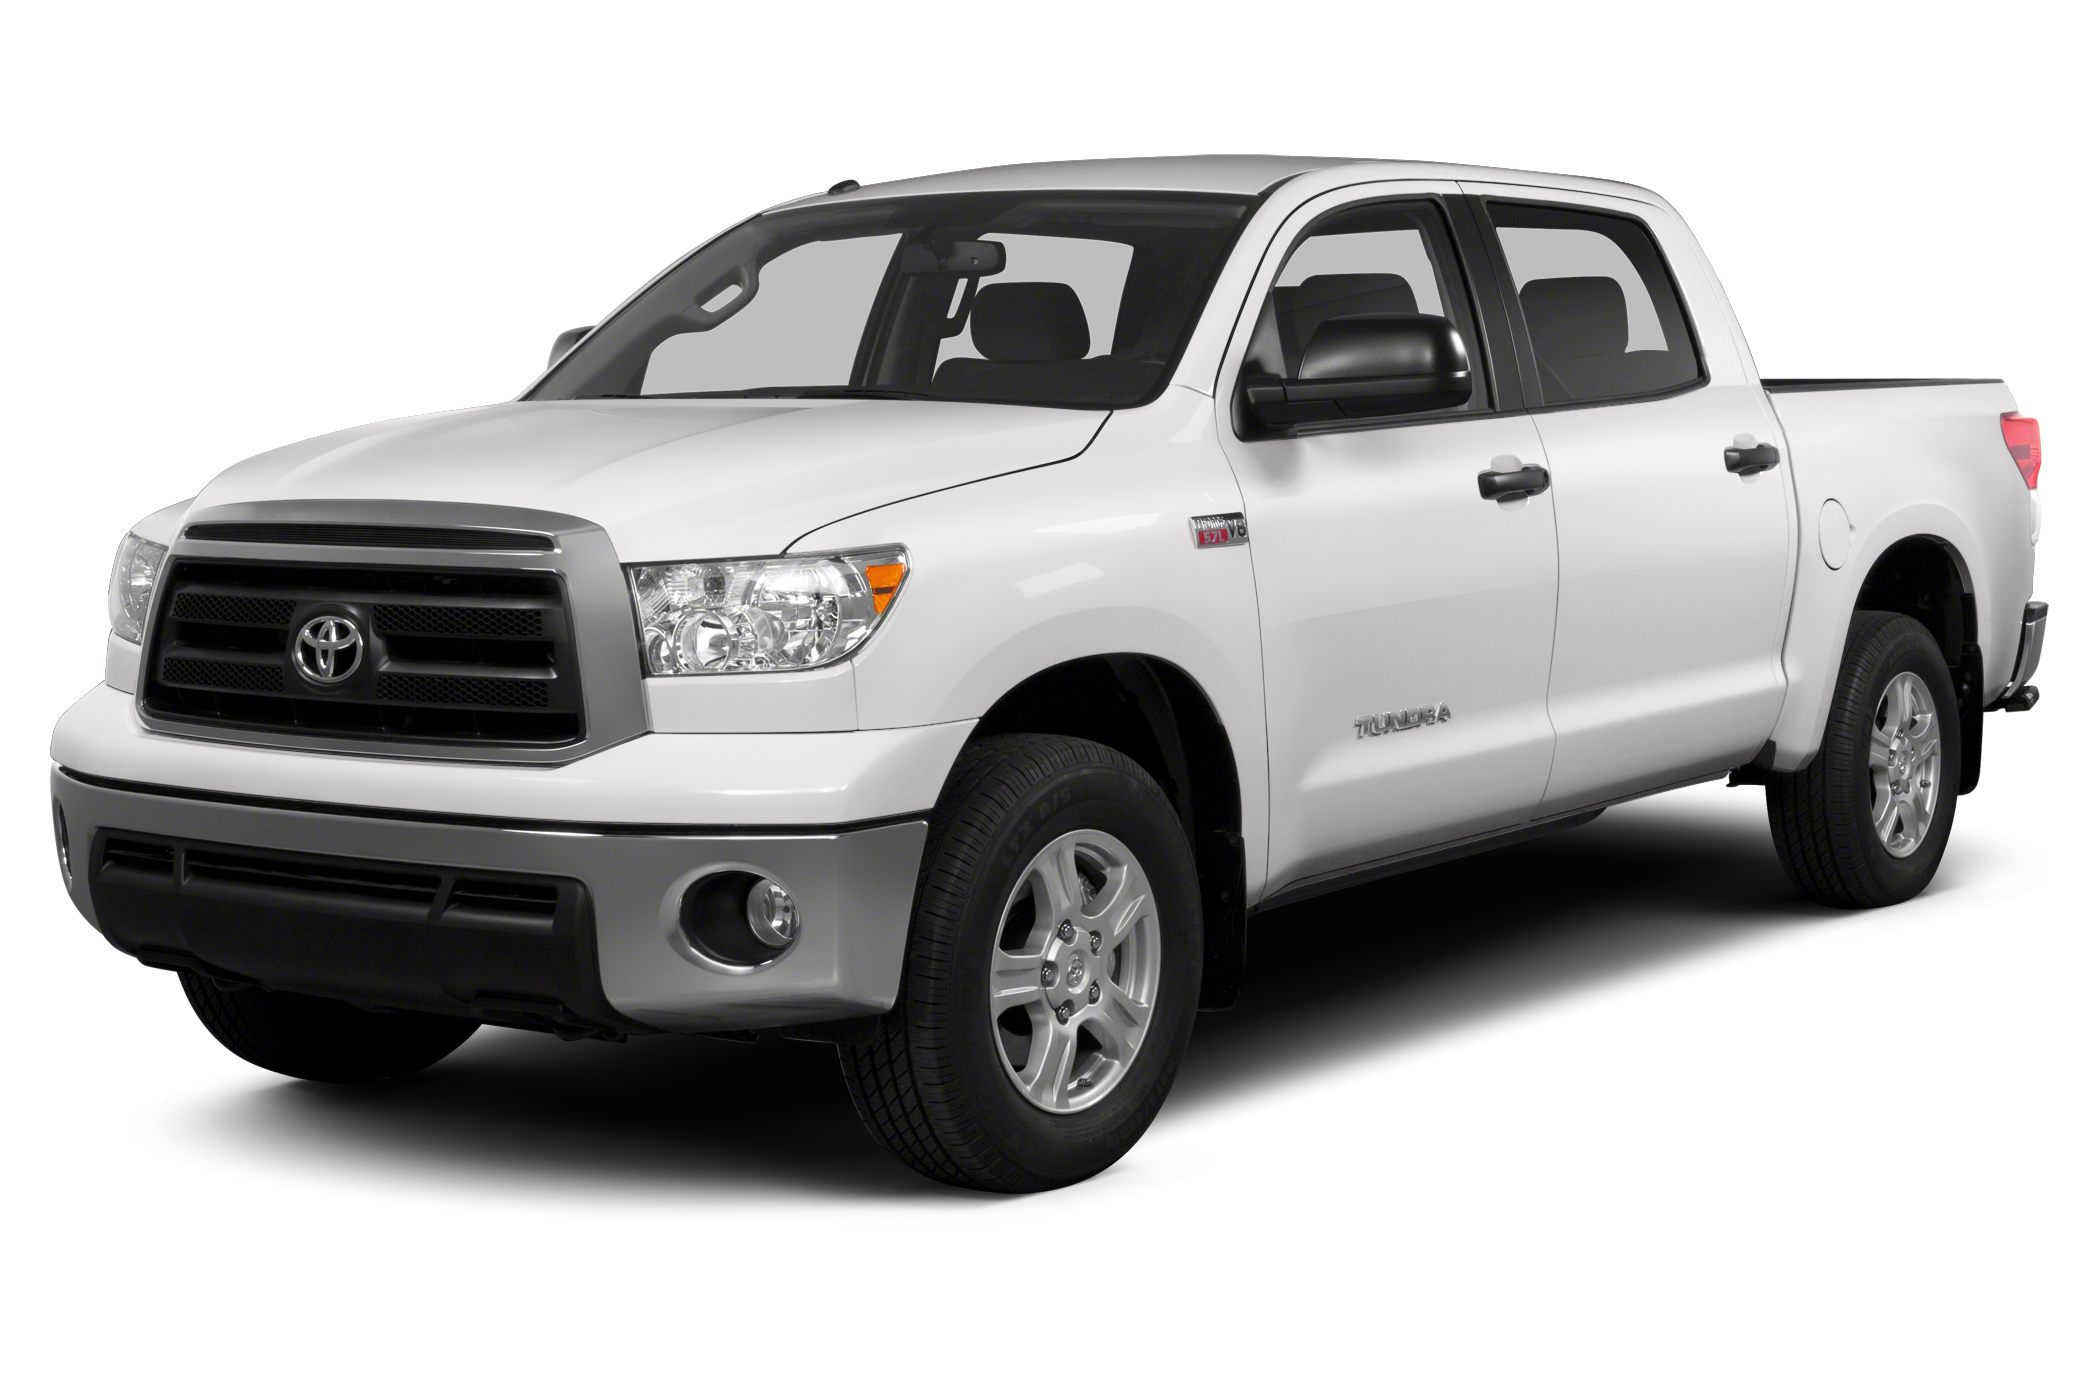 2013 Toyota Tundra Platinum 57l V8 4x4 Crew Max 56 Ft Box 1457 2001 Trailer Plug Wiring Diagram In Wb Pricing And Options